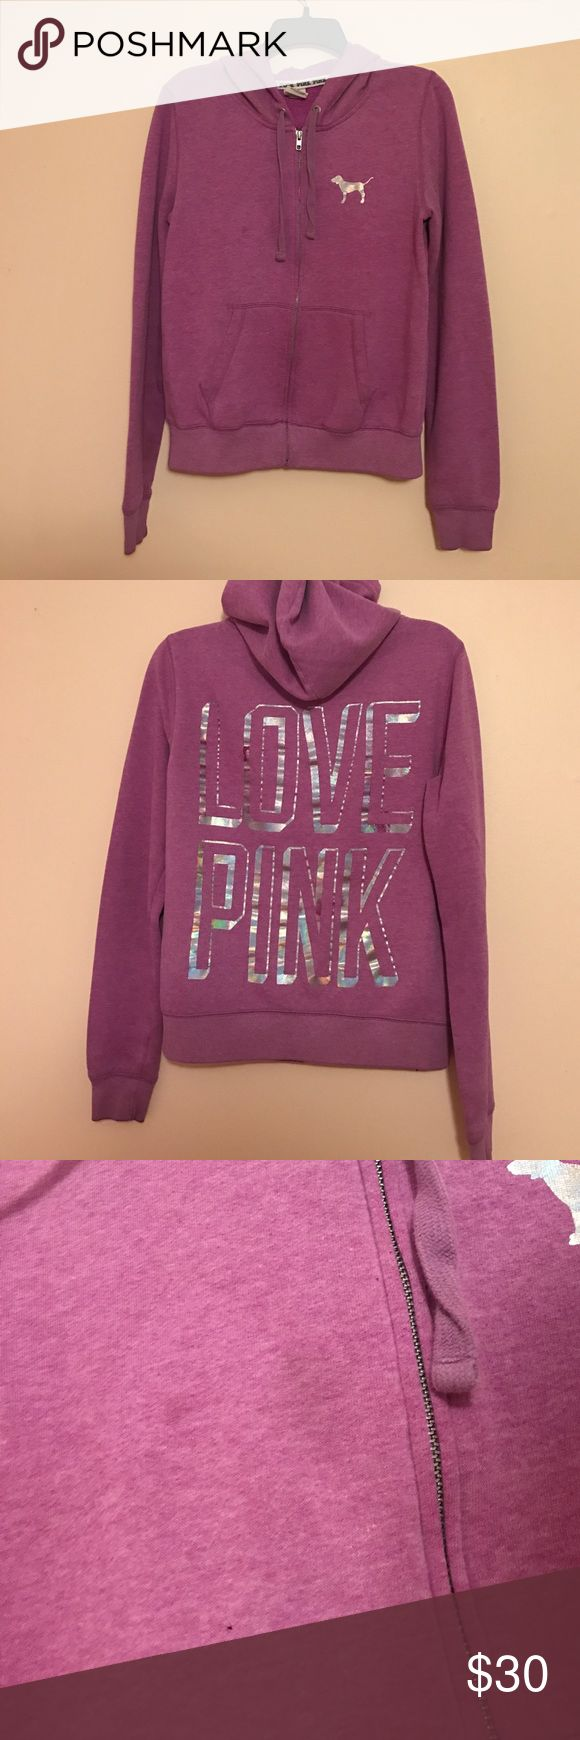 VS Pink purple zip up hoody Purple zip up with hood. Small stain shown in last photo that is actually not too visible in person PINK Victoria's Secret Tops Sweatshirts & Hoodies